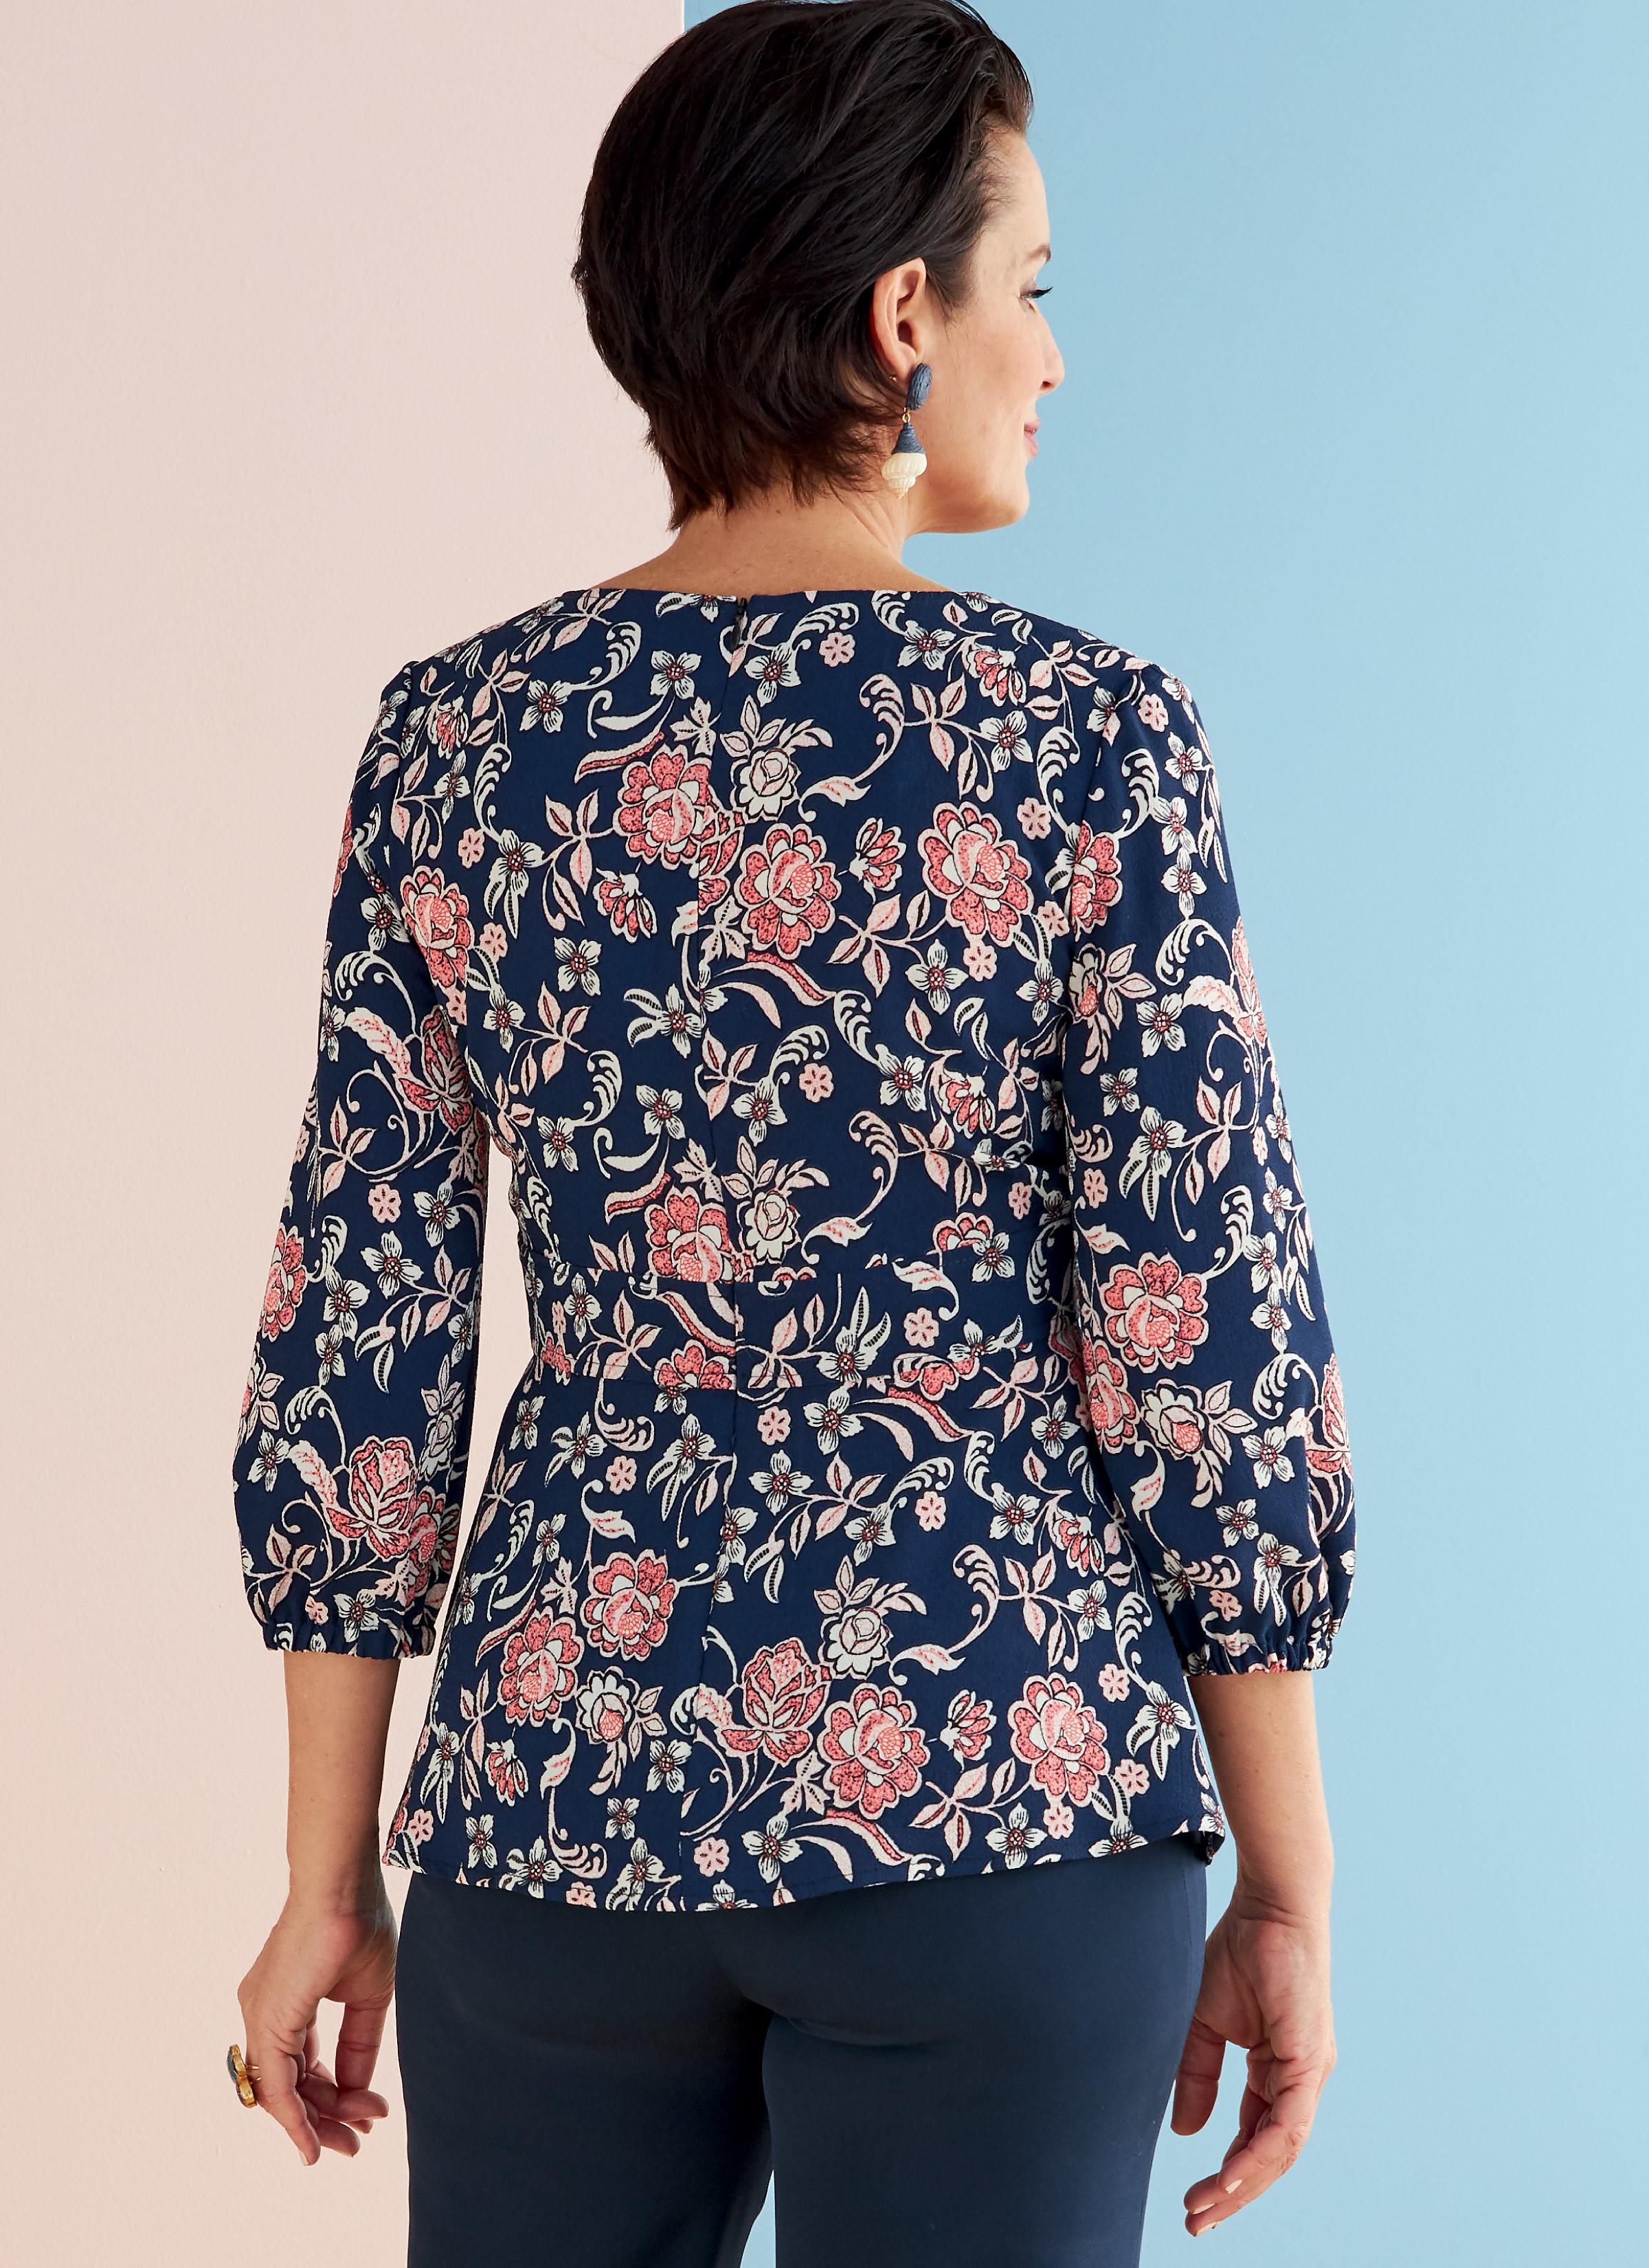 Butterick B6732 Misses' Top